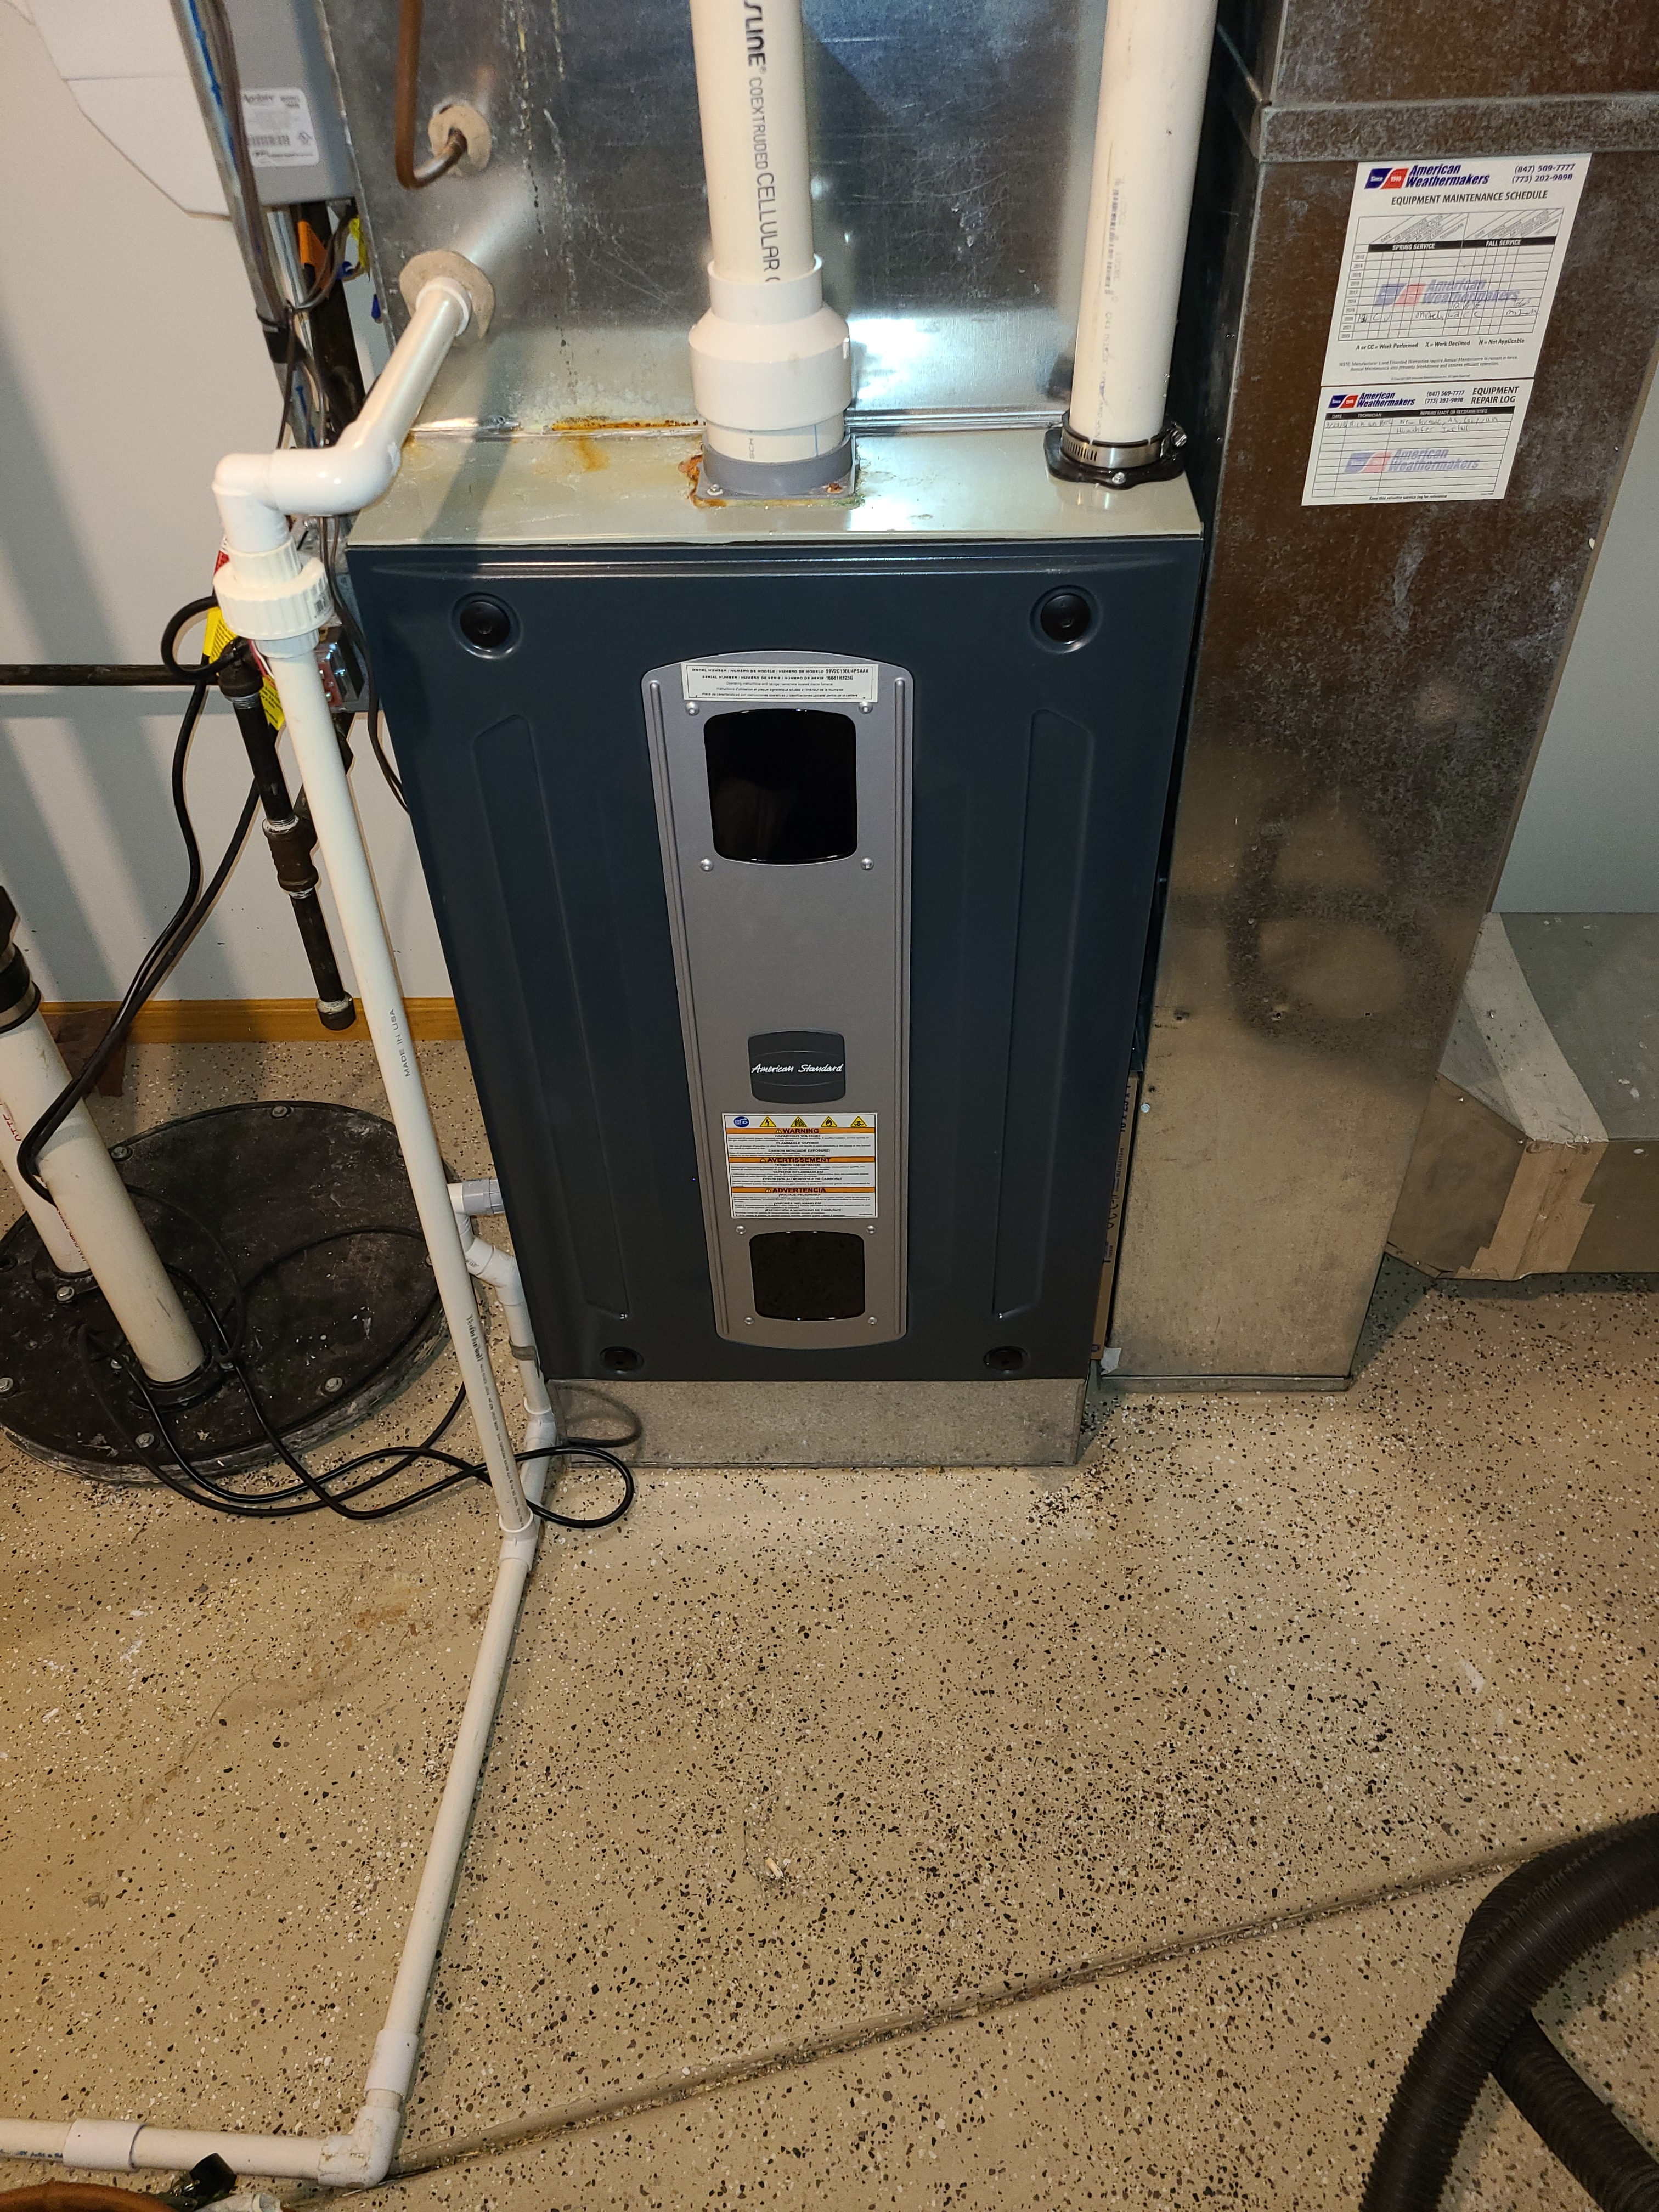 Winter is coming. That means time to get your American Standard furnace cleaned.